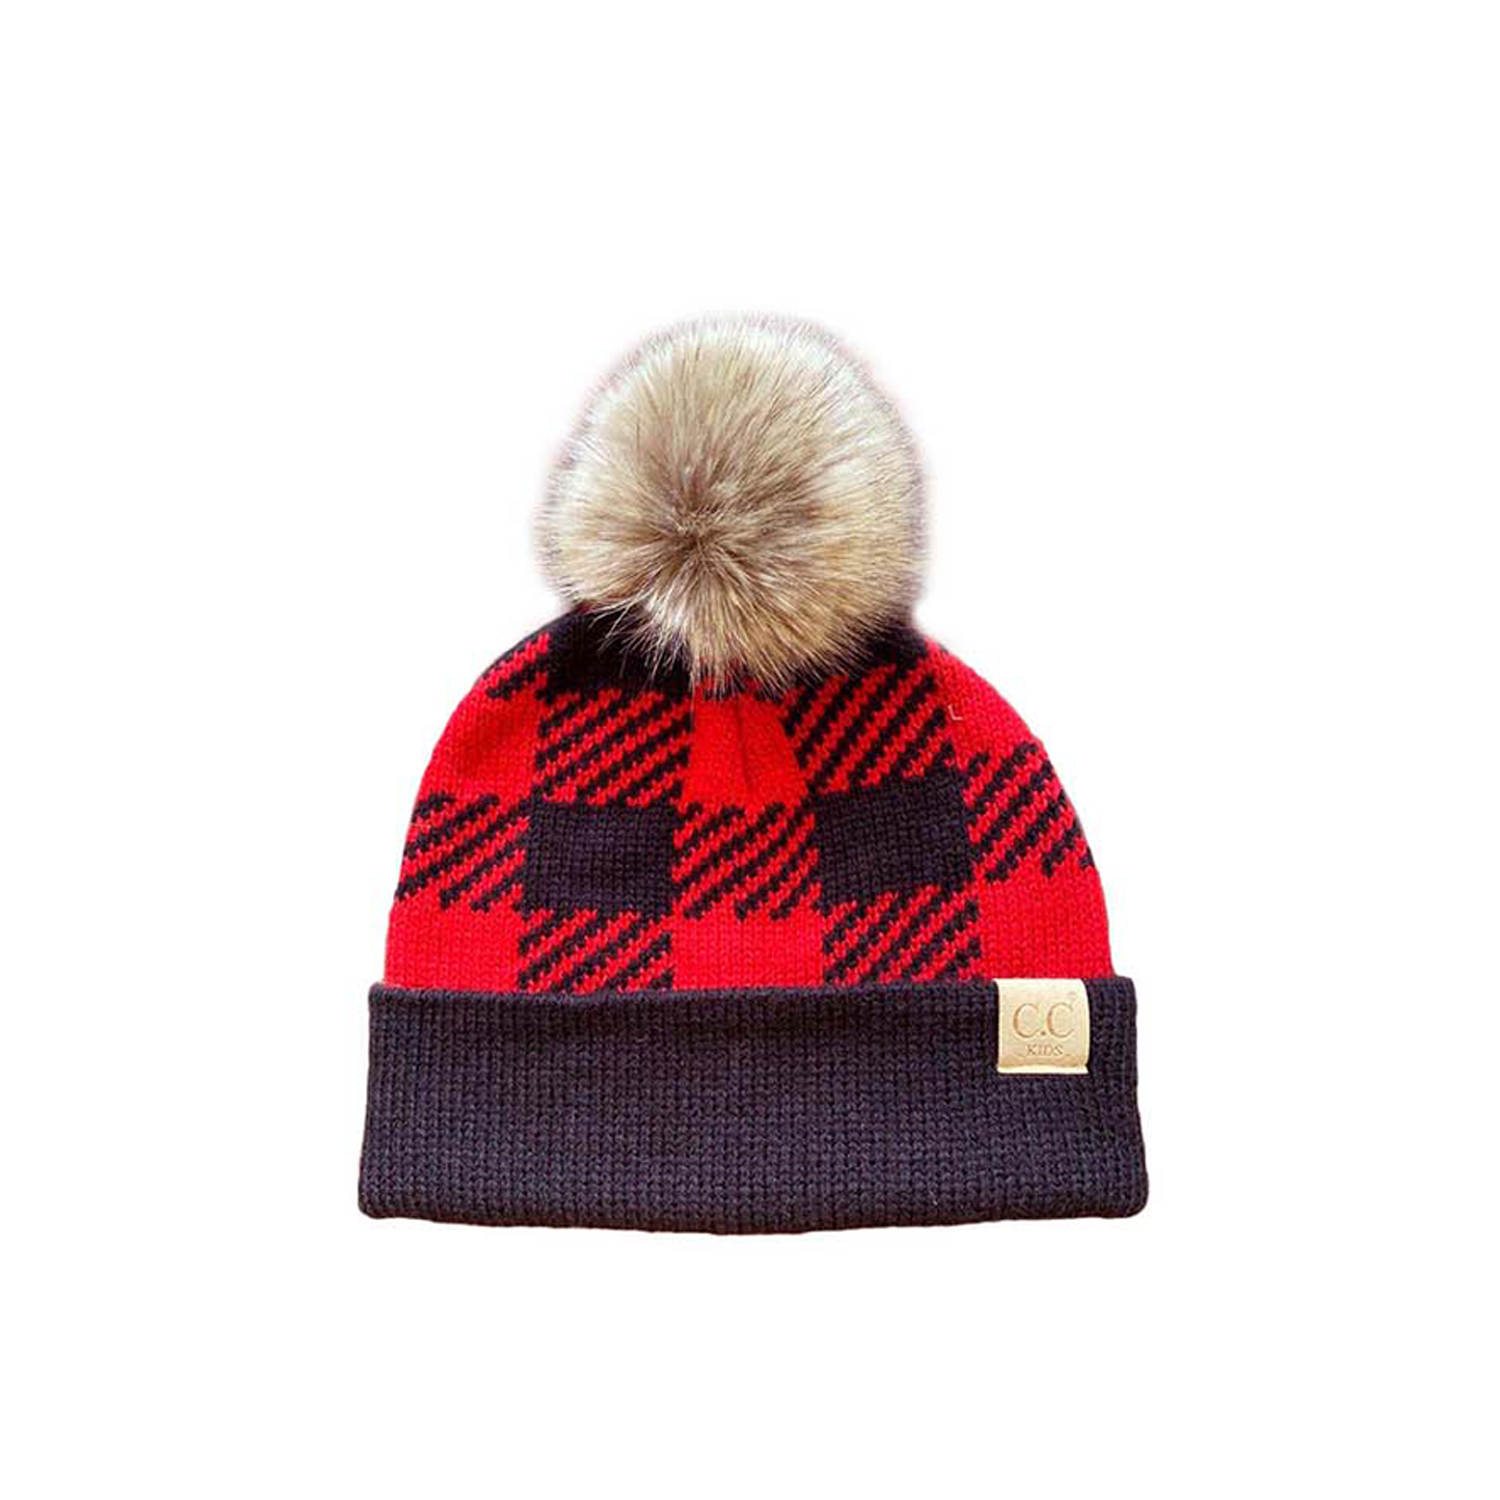 BP-43-KIDS Buffalo Plaid Beanie w/Faux Fur Pom - Red/Black